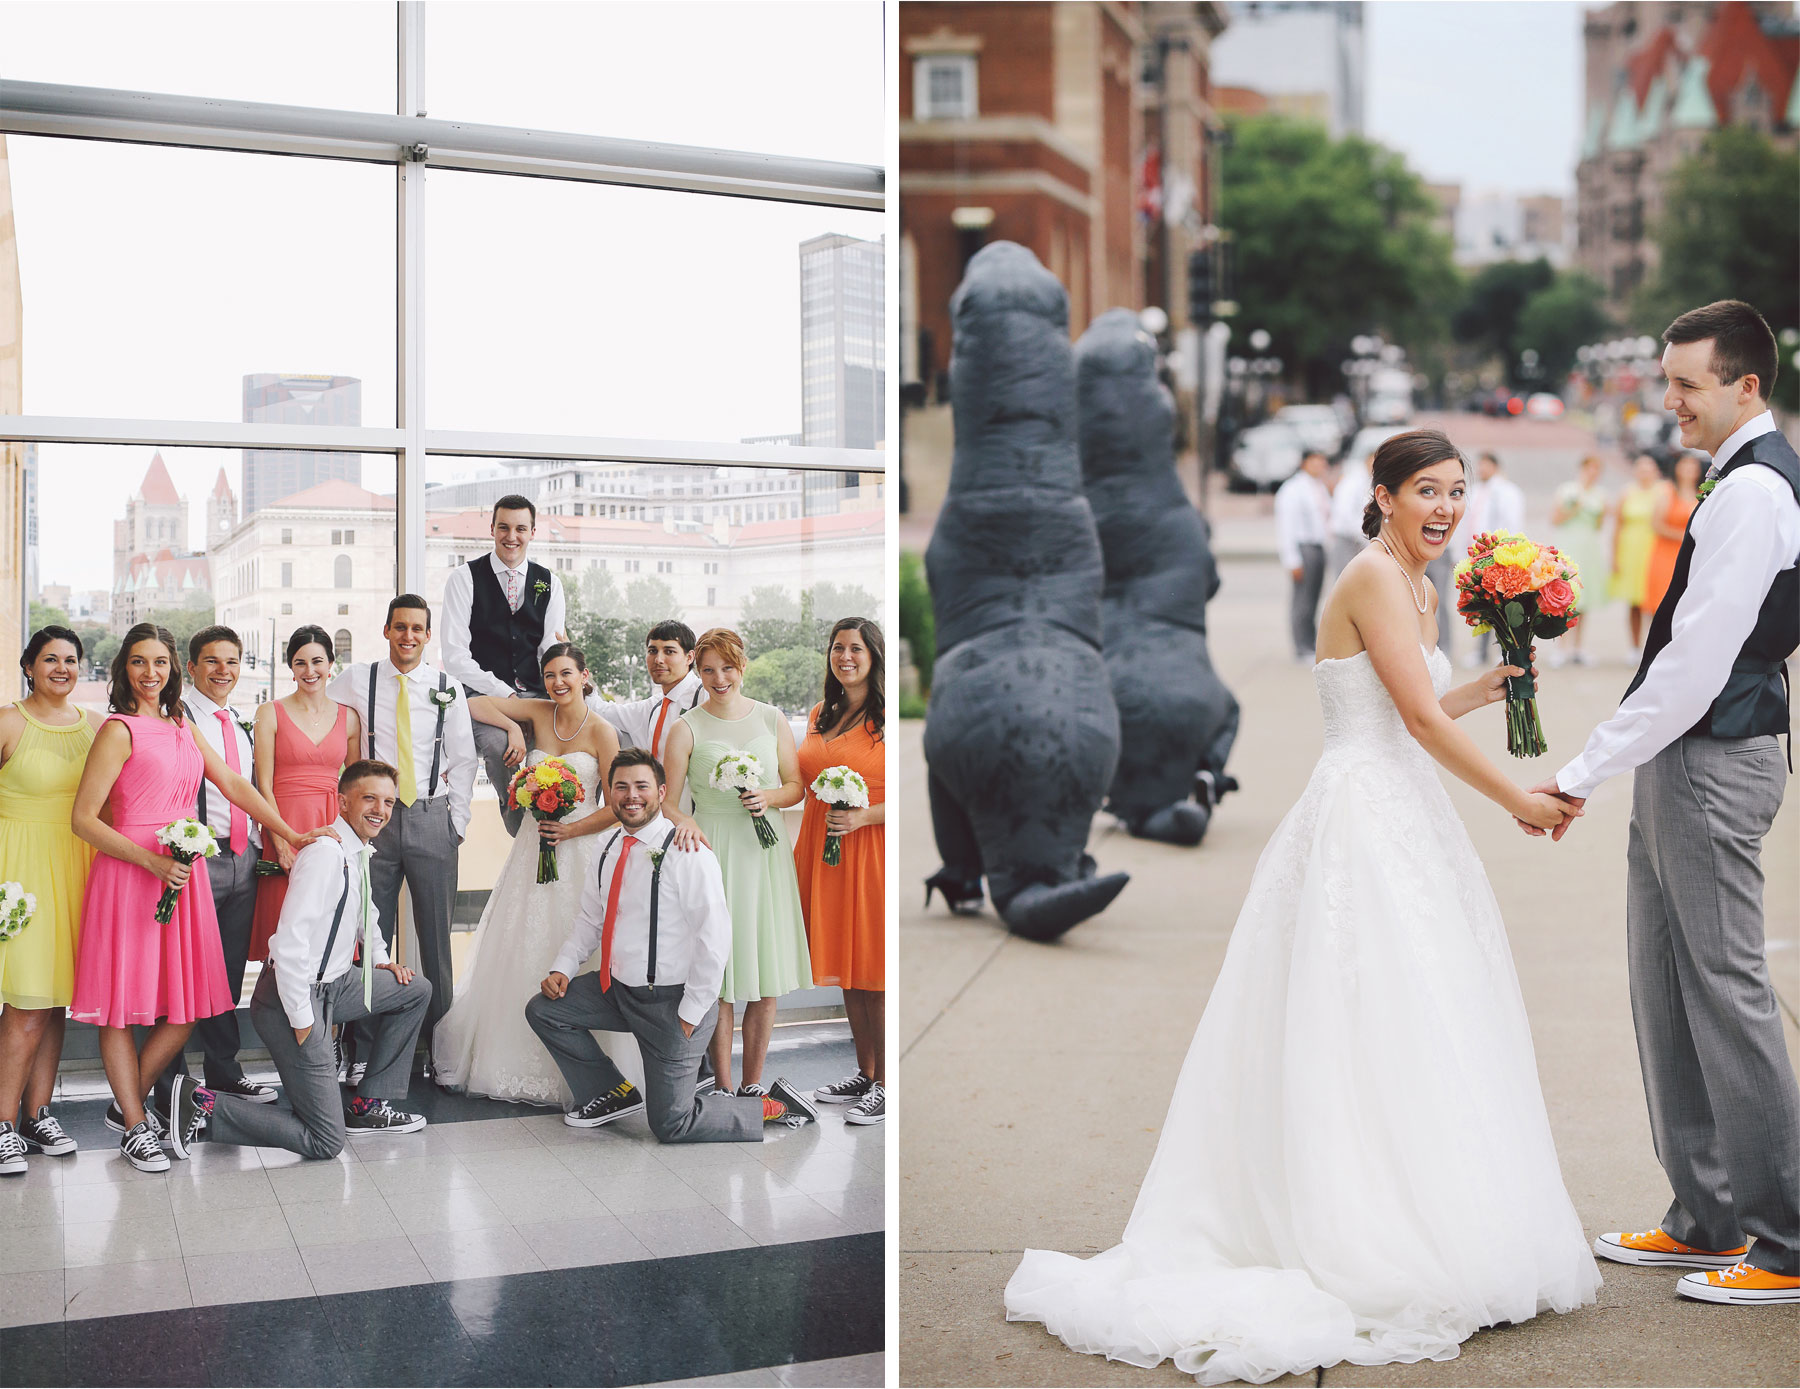 07-St-Paul-Minnesota-Wedding-Photography-by-Vick-Photography-Science-Museum-Dinosaur-Wedding-Group-Wedding-Party-Stephanie-and-Scott.jpg